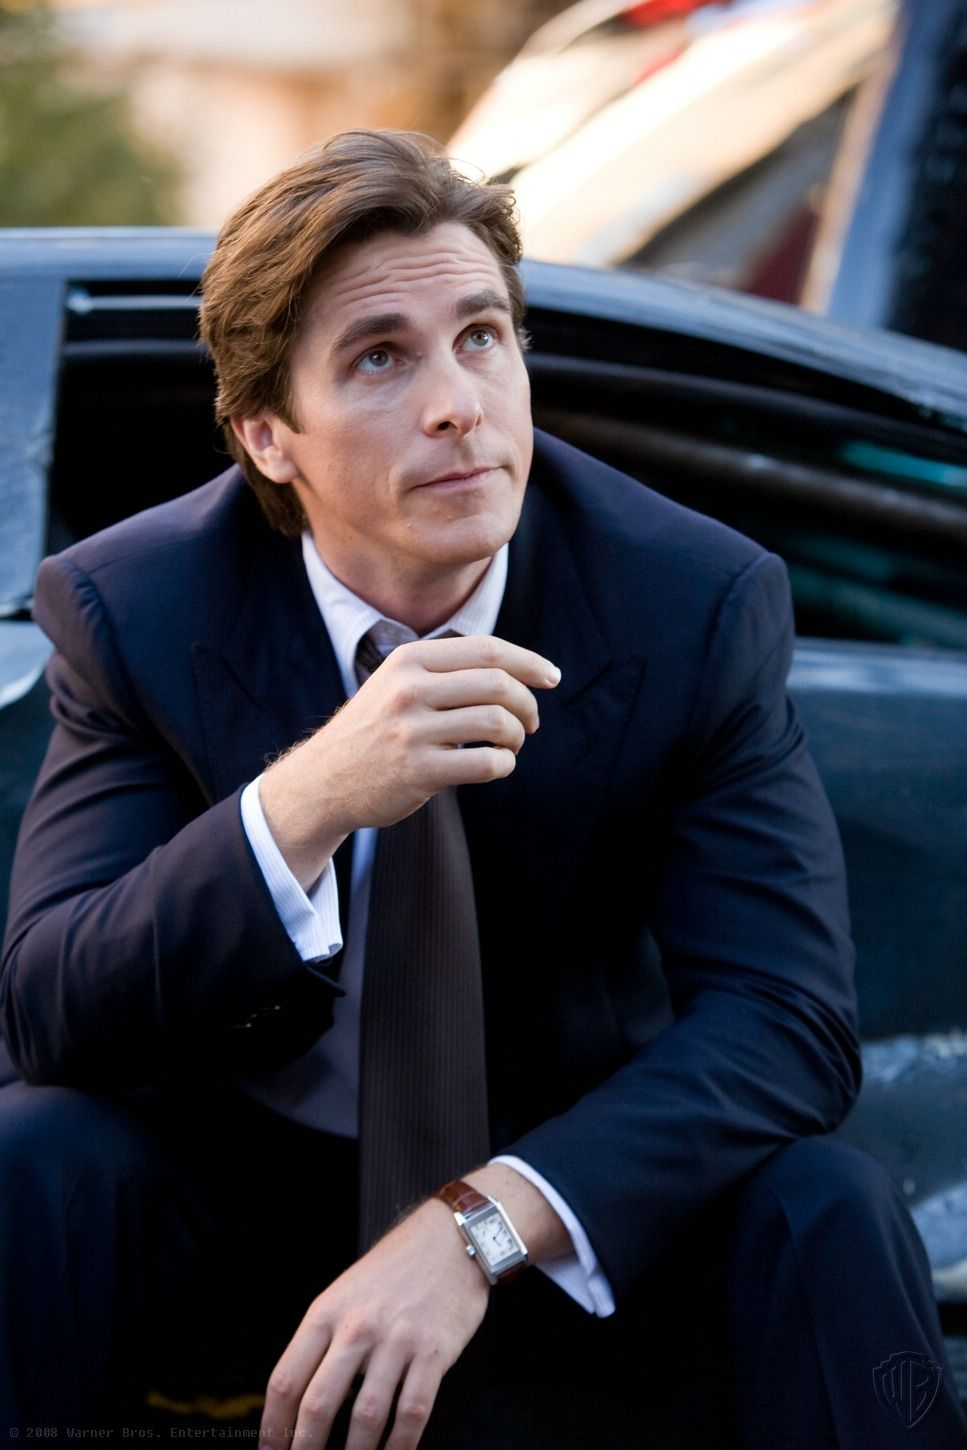 bruce wayne played by christian bale in the dark knight